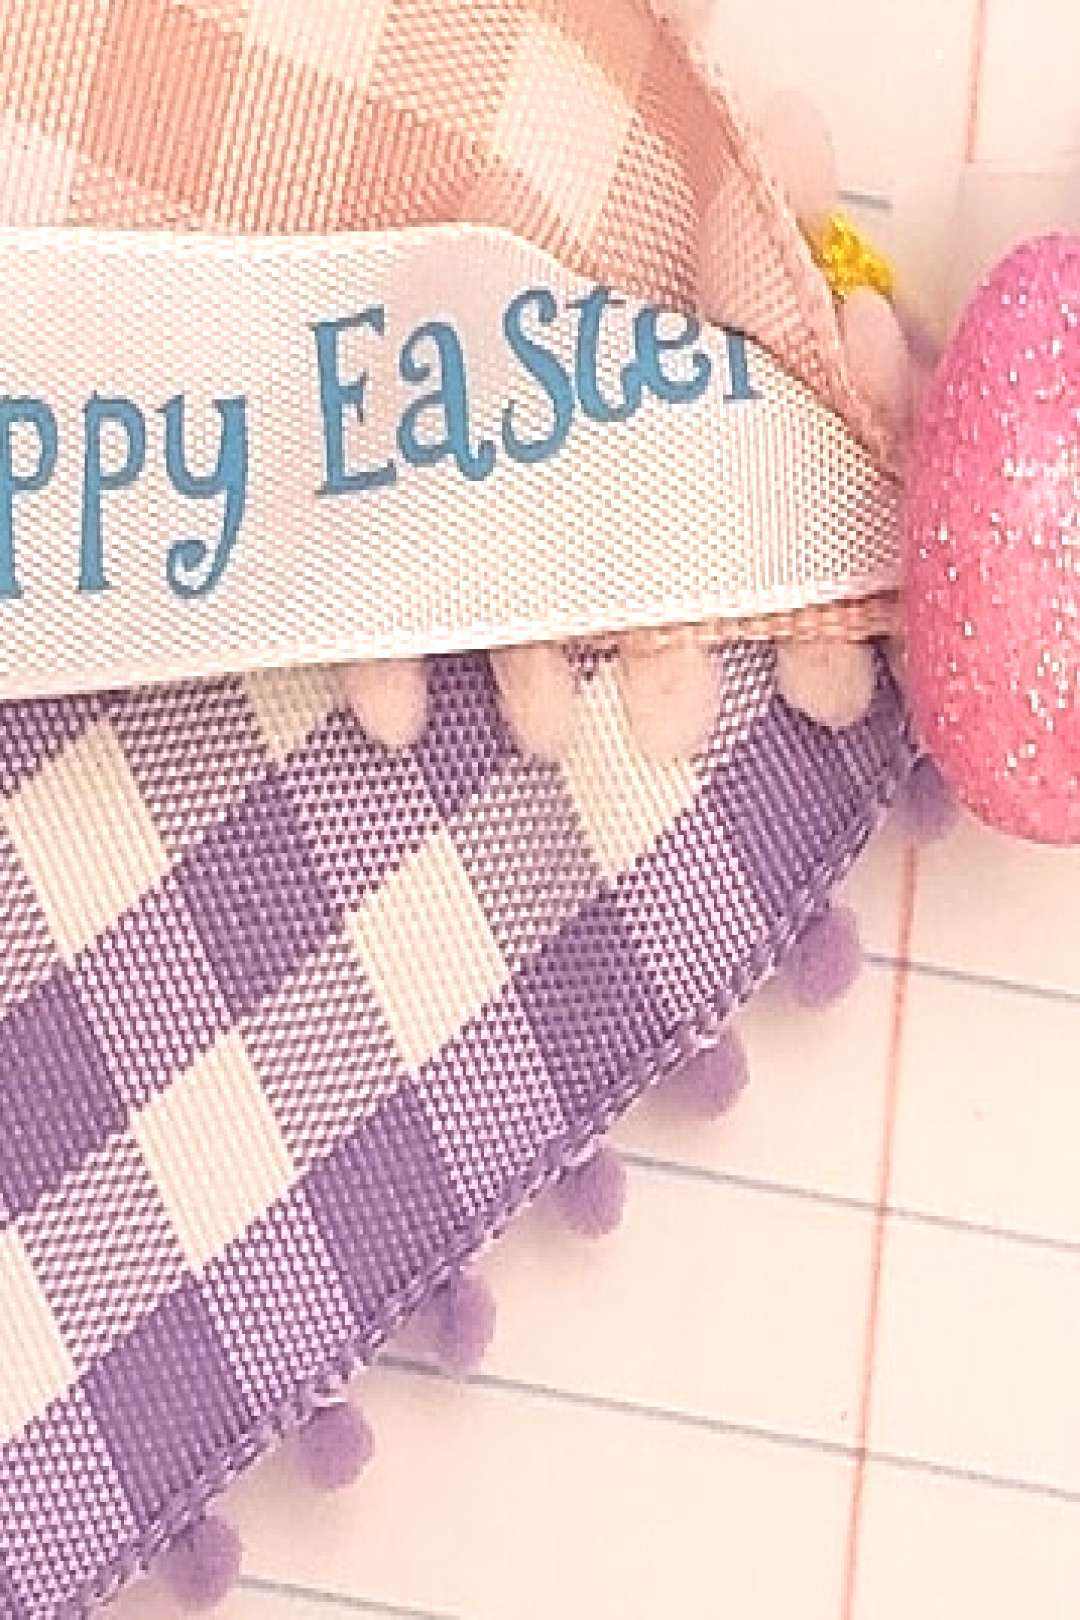 A little sneak peek at some Easter bows Im working. Taking order